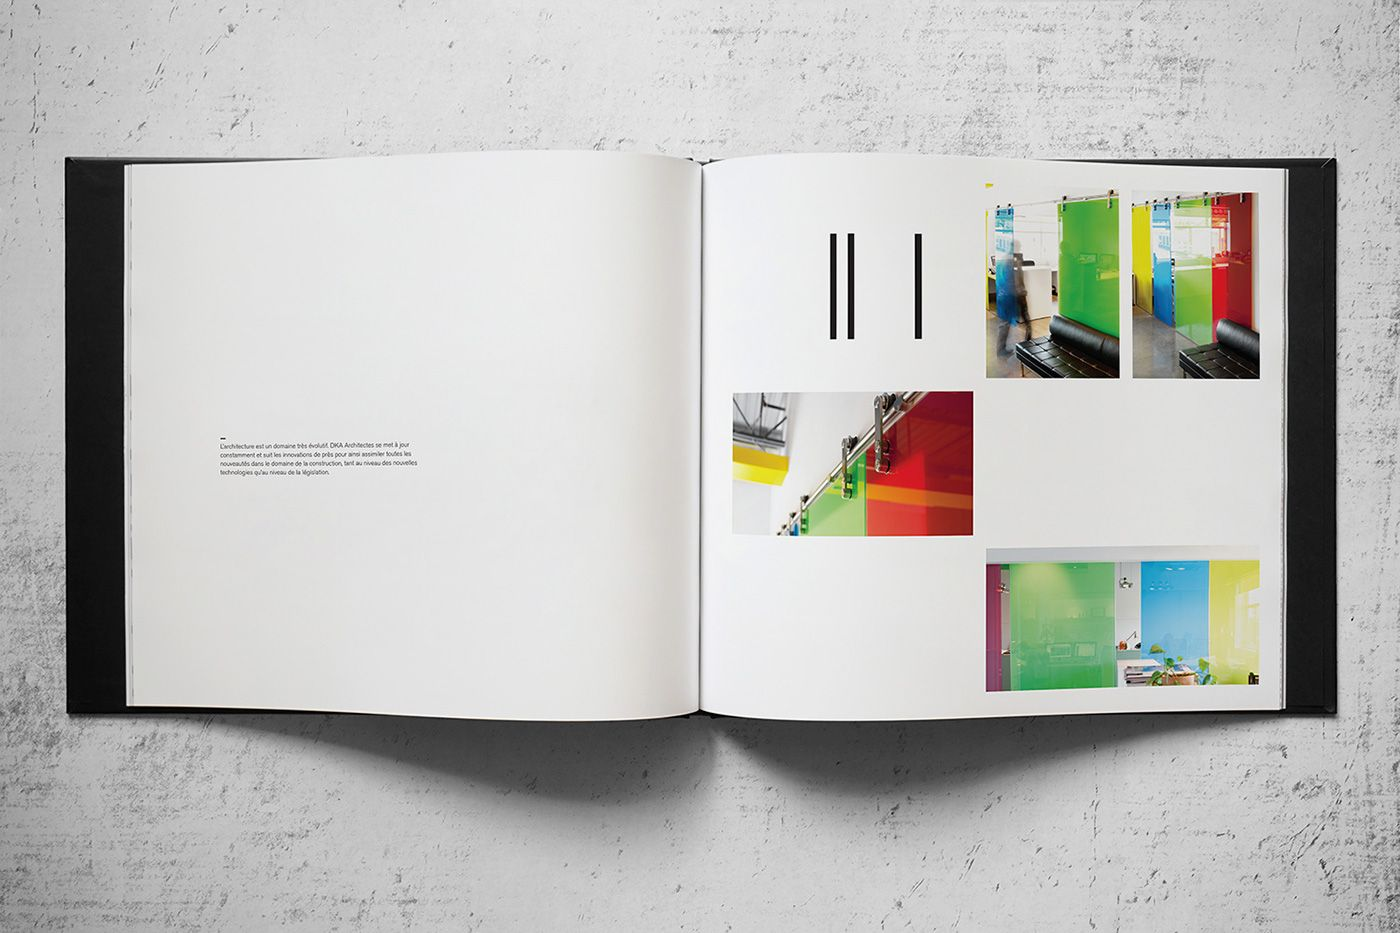 I was asked to design a coffee table book for dka architectes i was asked to design a coffee table book for dka architectes showcasing their worki created a modular grid system allowing me to create 72 unique pages geotapseo Image collections